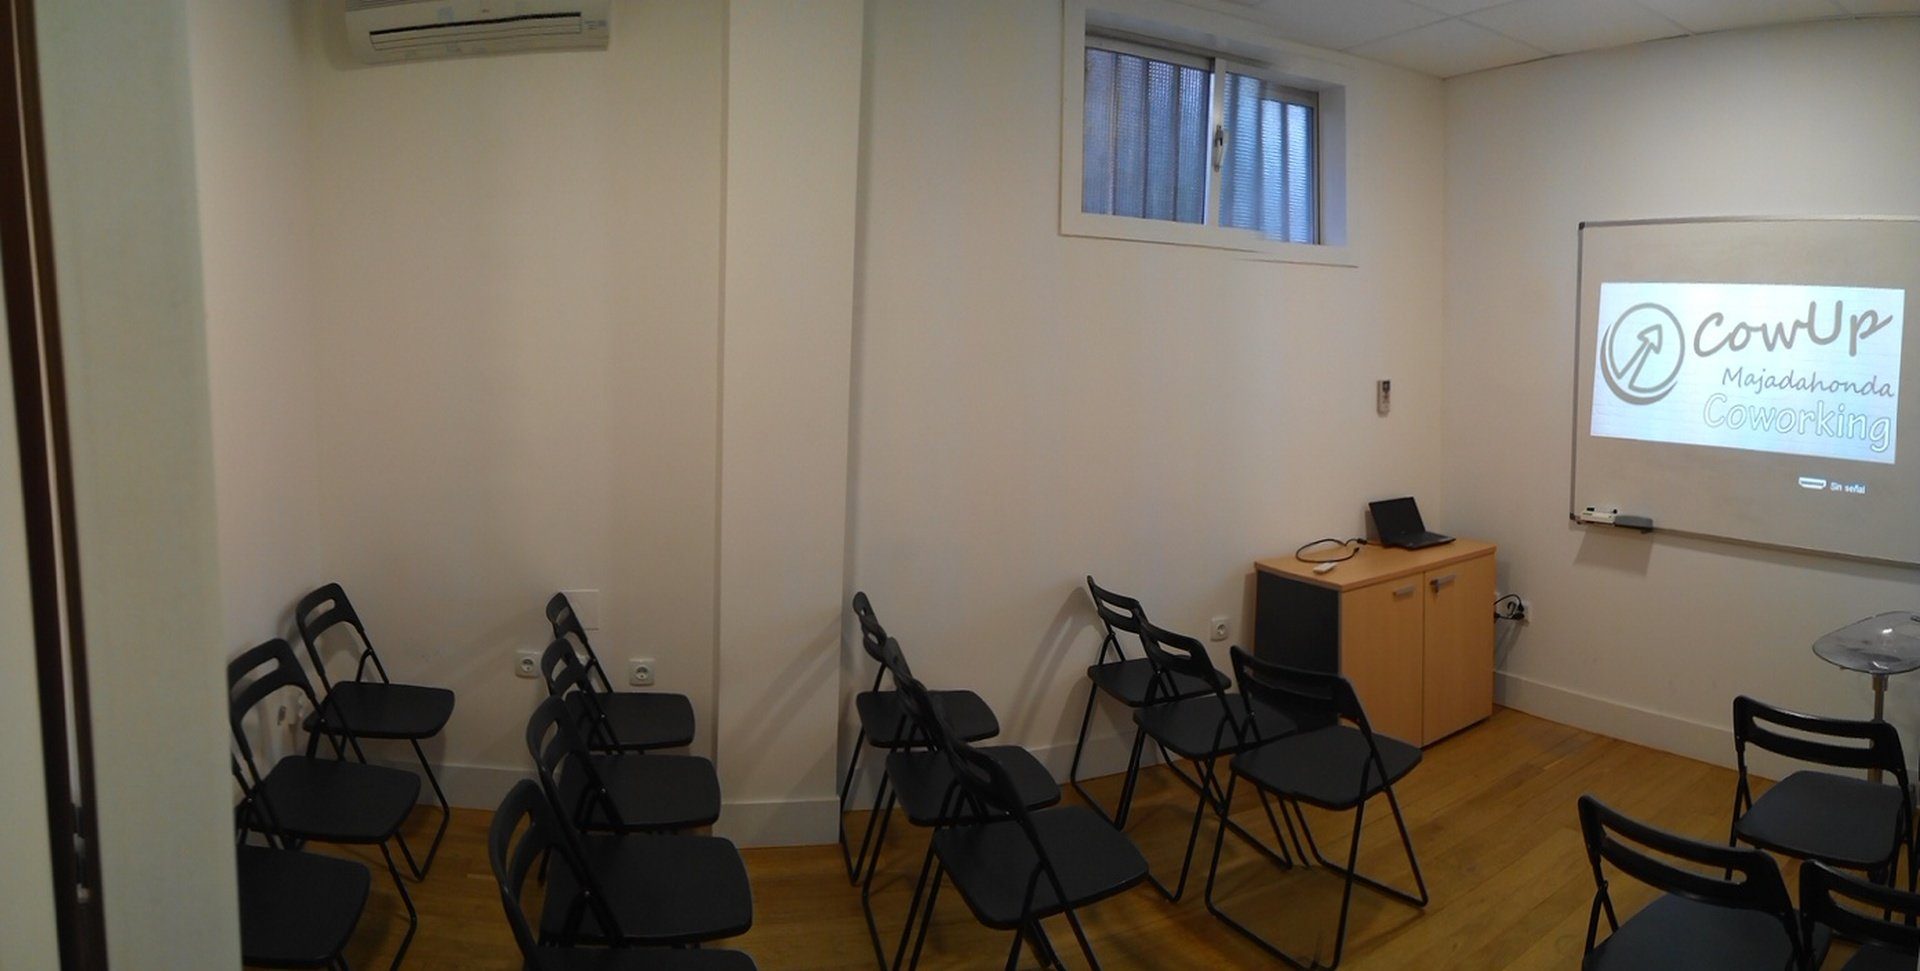 Madrid training rooms Espace de Coworking CowUp Majadahonda Coworking image 1